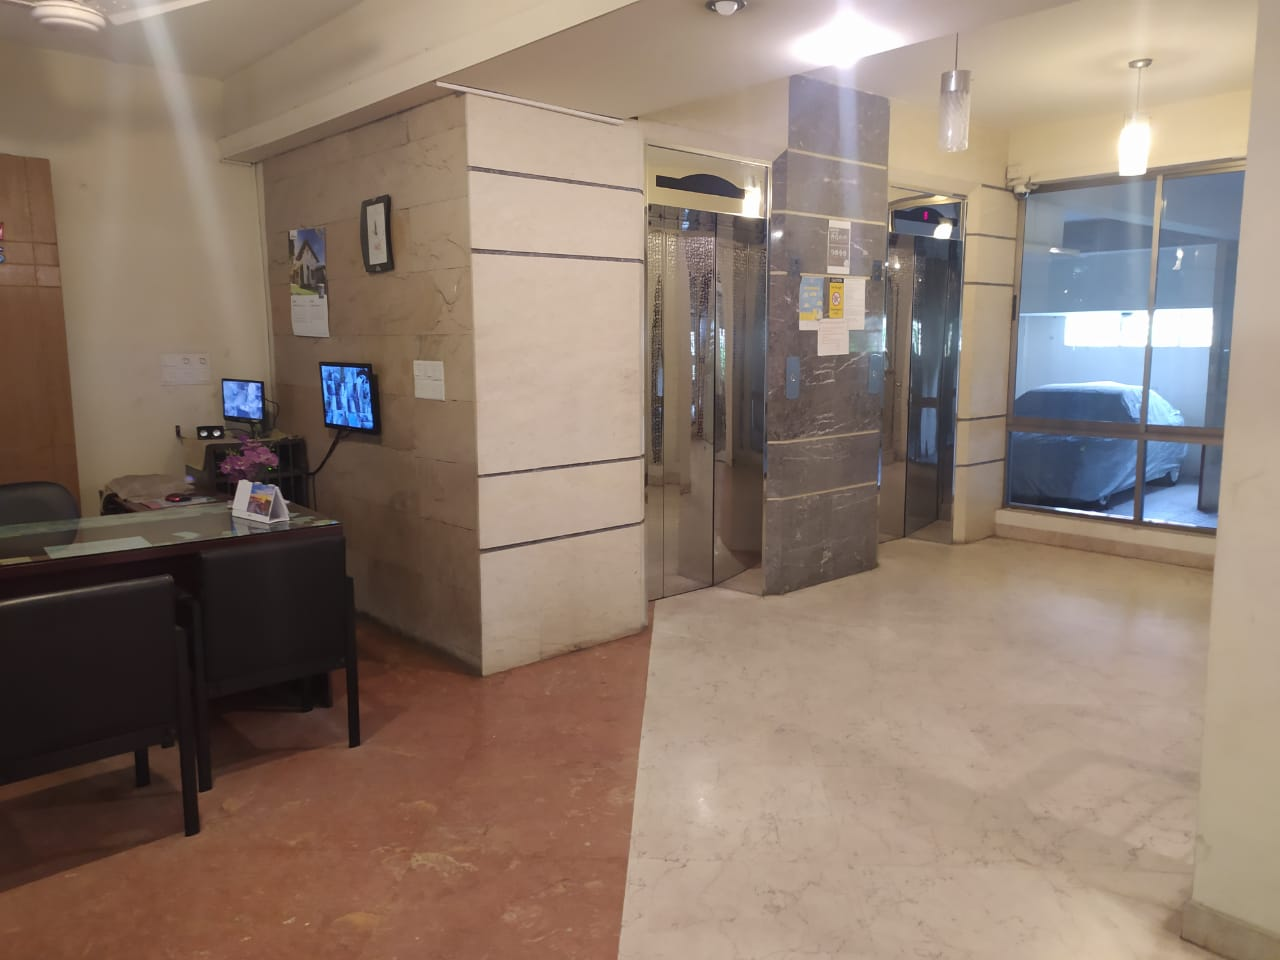 2495-sft-apartment-for-rent-in-north-khulshi-chittagong-5th-floor-453351